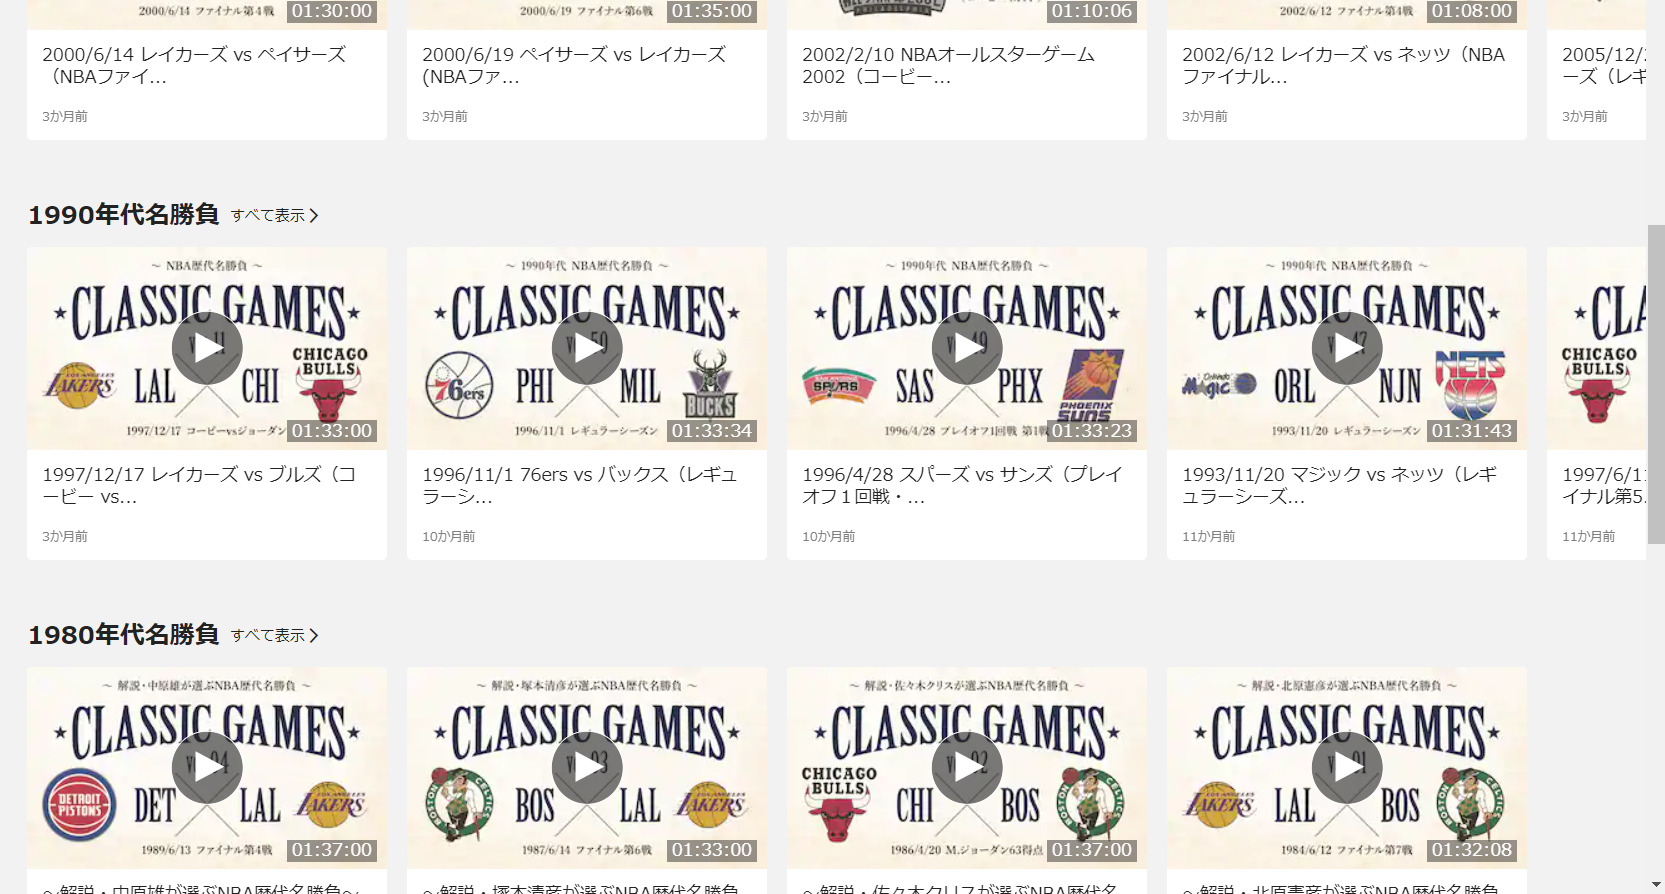 CLASSIC_GAME_ジョーダン